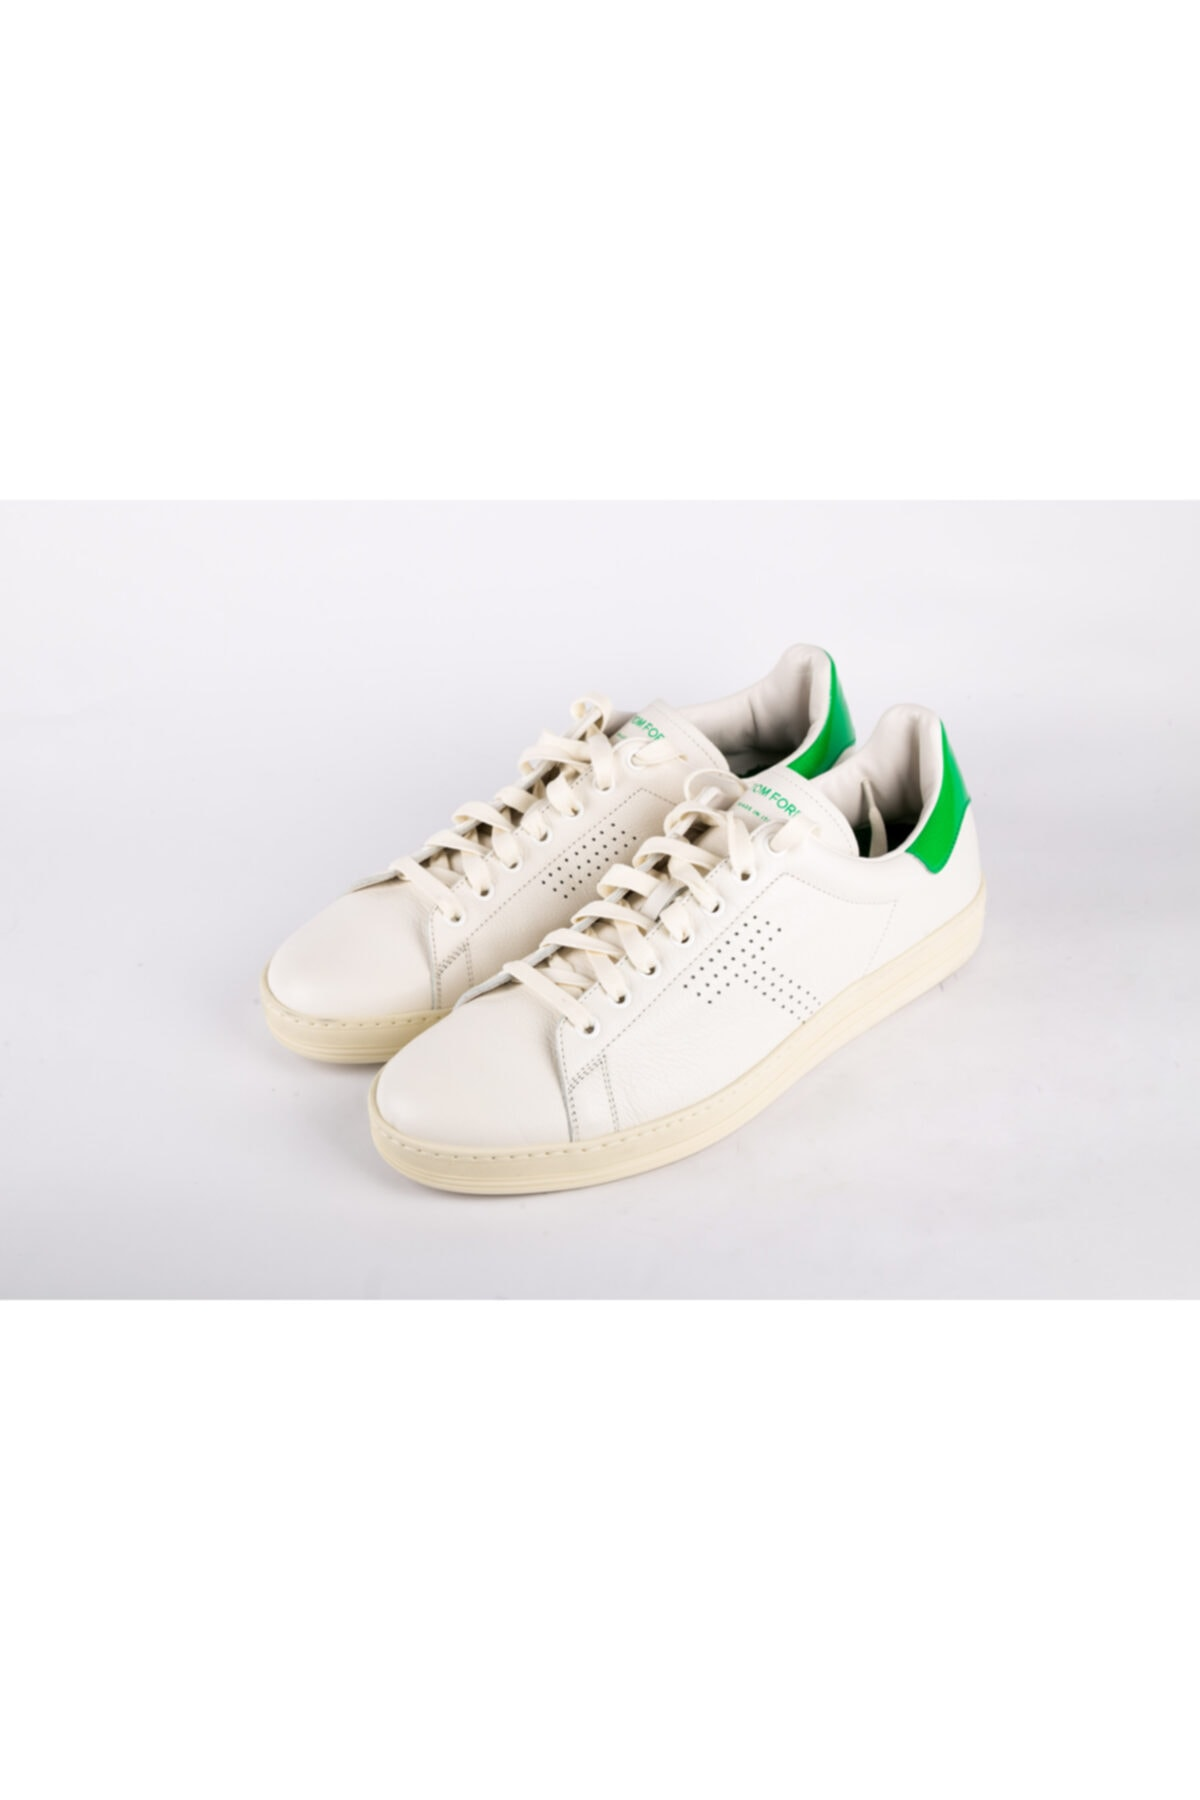 Tom Ford Erkek Sneakers 2